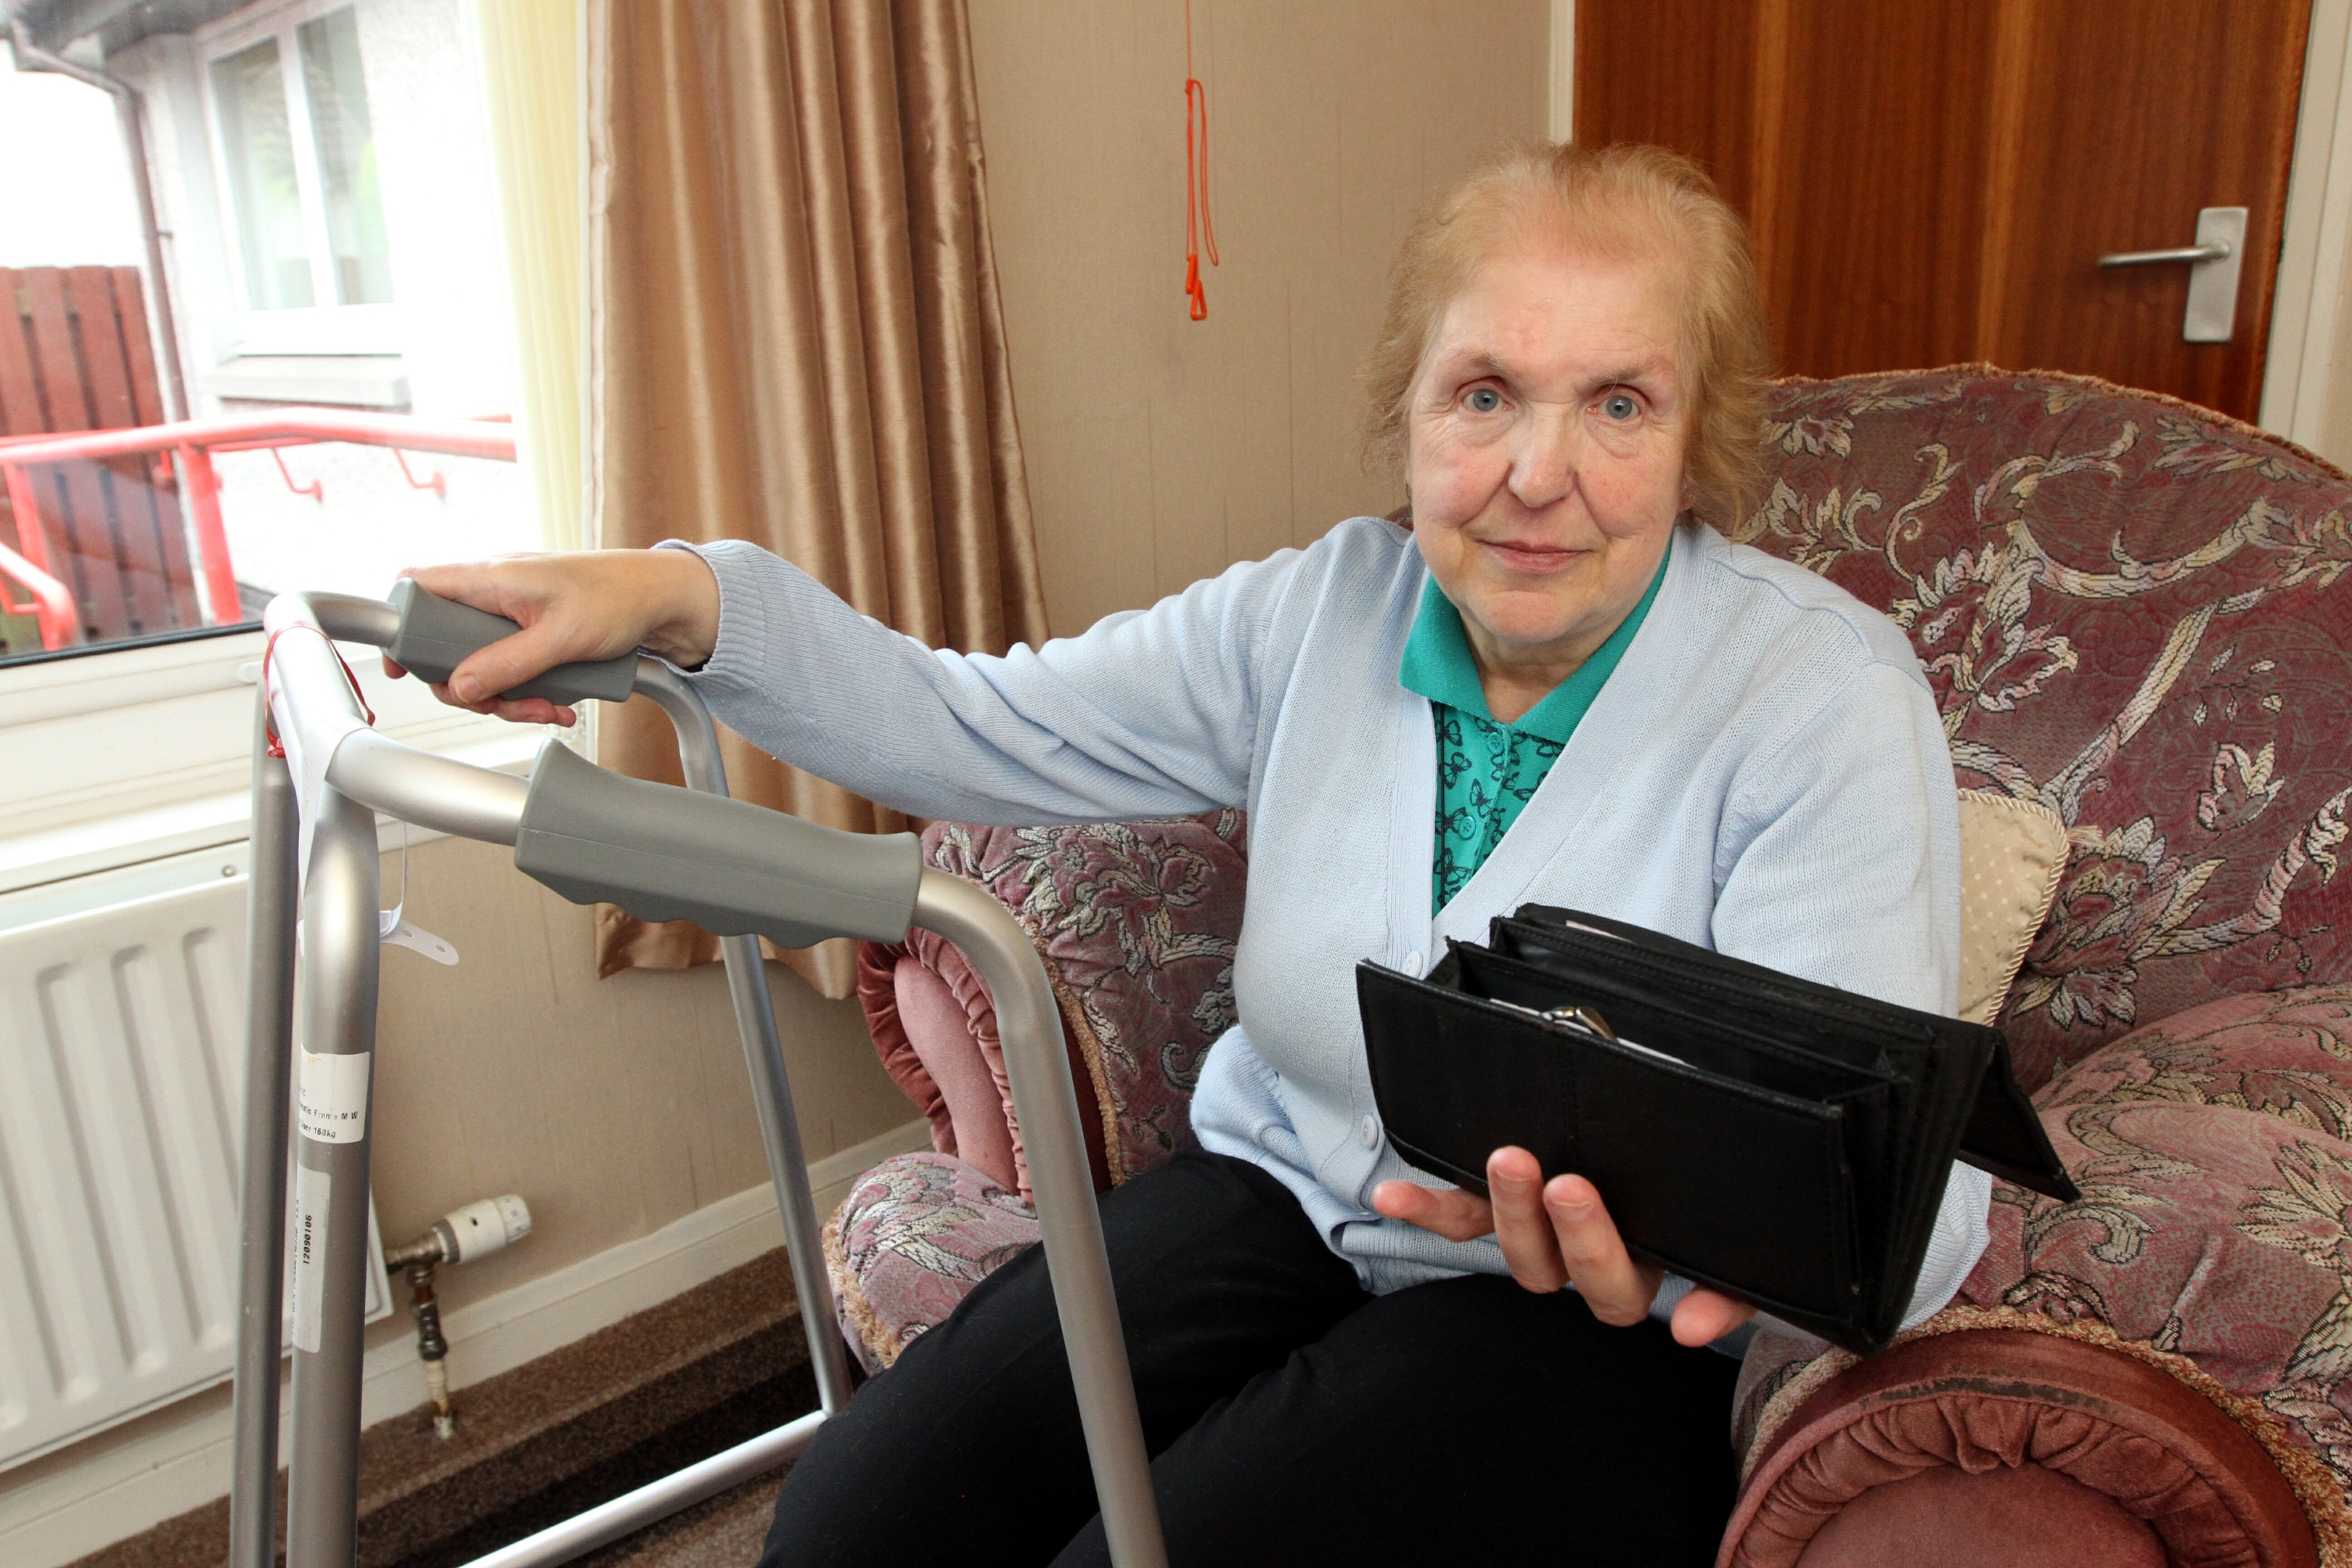 Davina Parfitt said she had £200 stolen from her purse while she was receiving treatment in Ninewells.